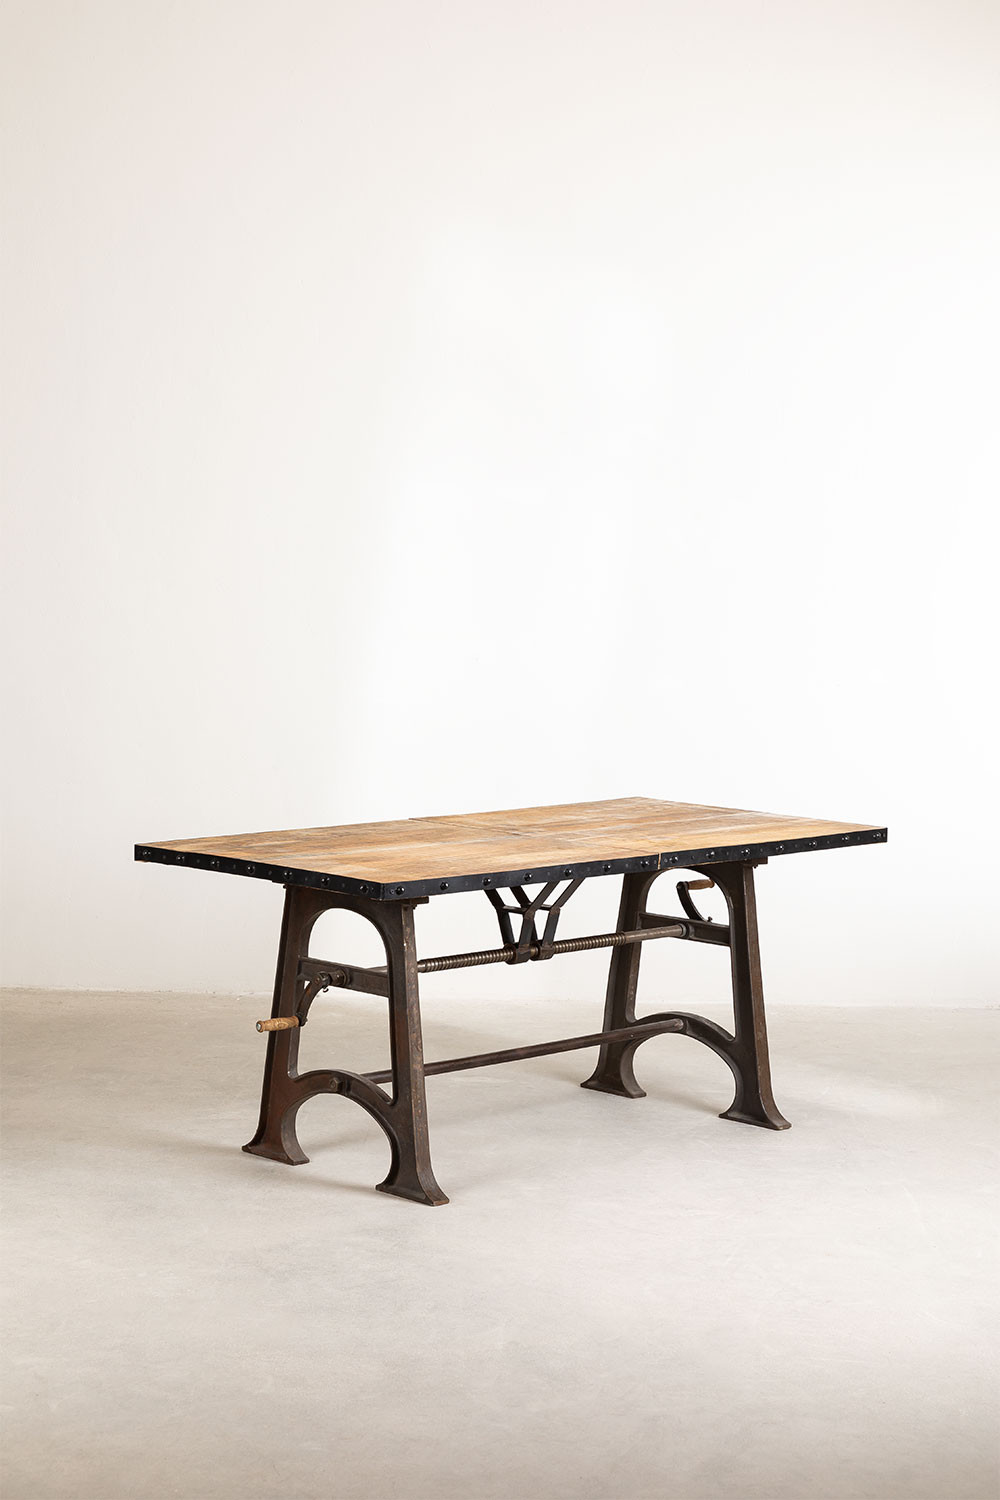 Extendable Wooden Dining Table (184-236x91 cm) Tich, gallery image 925791